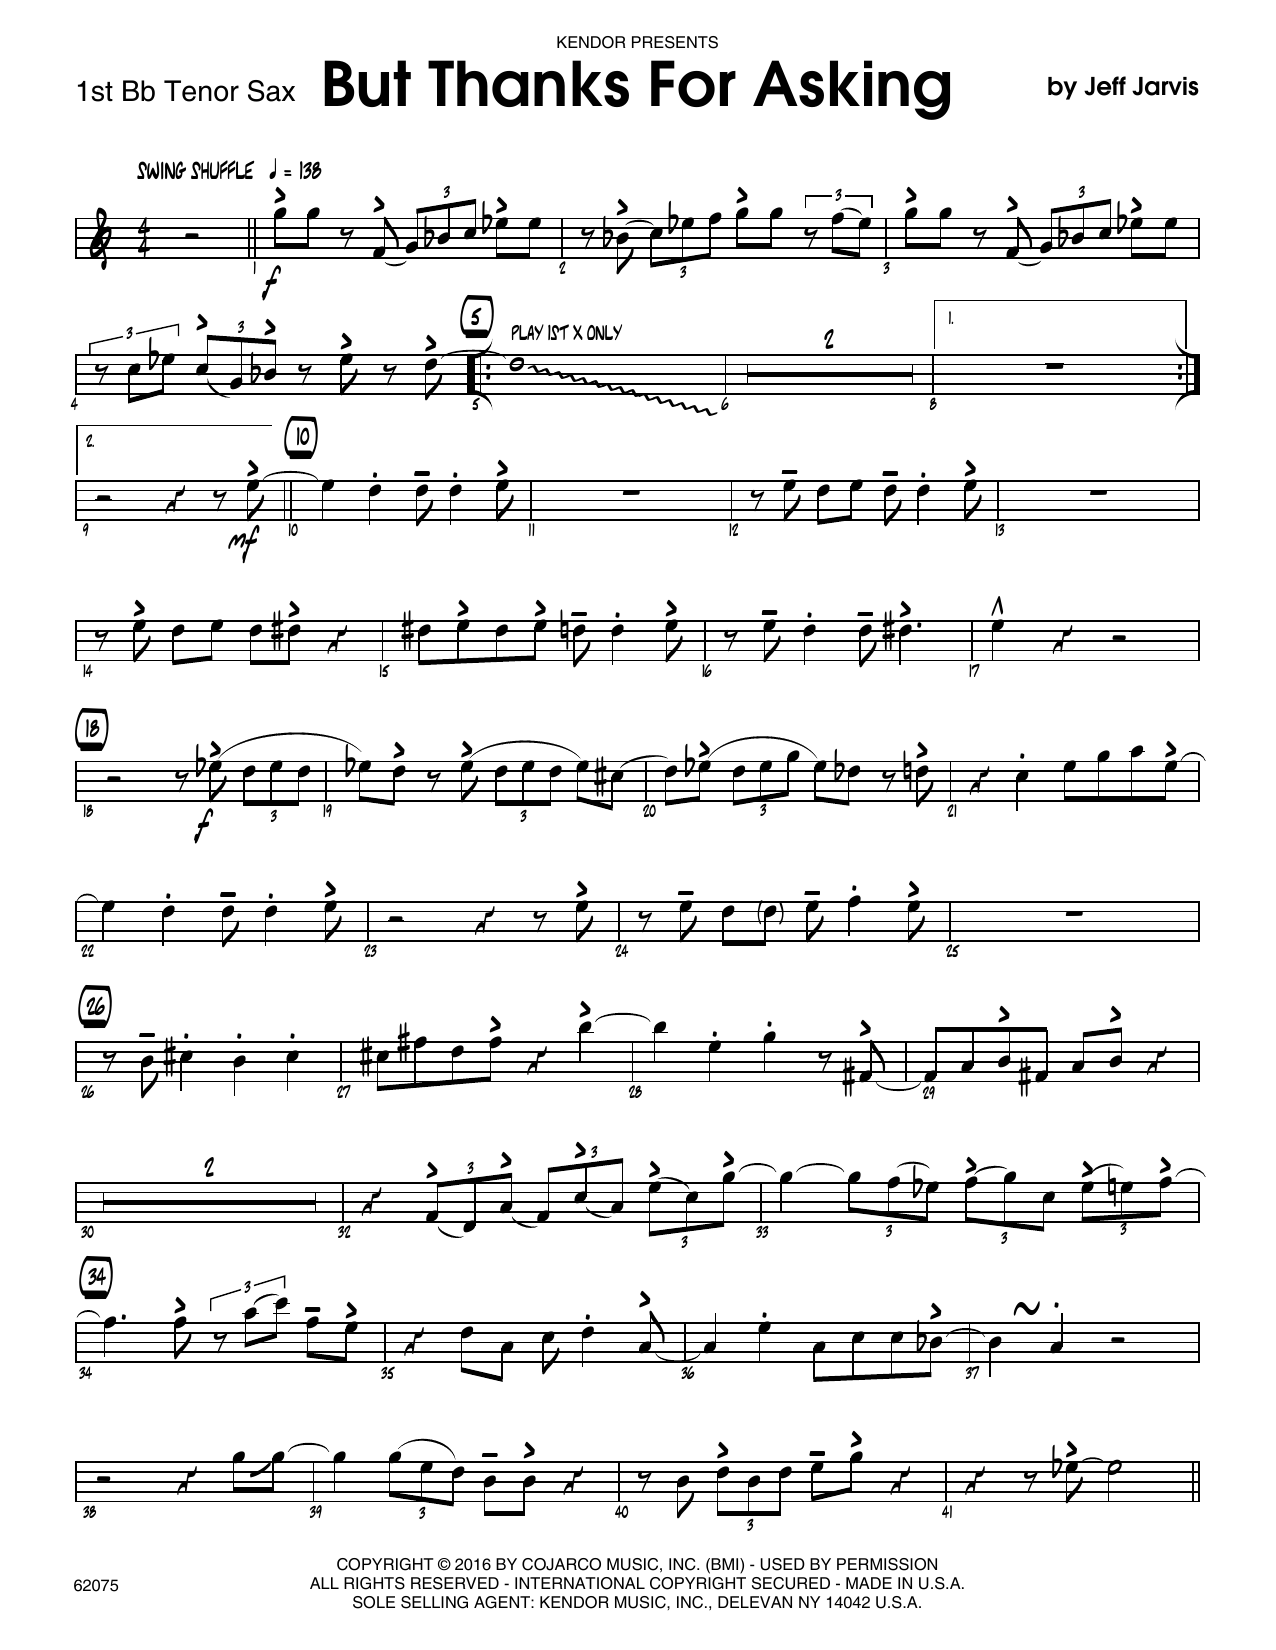 But Thanks For Asking - 1st Tenor Saxophone Sheet Music